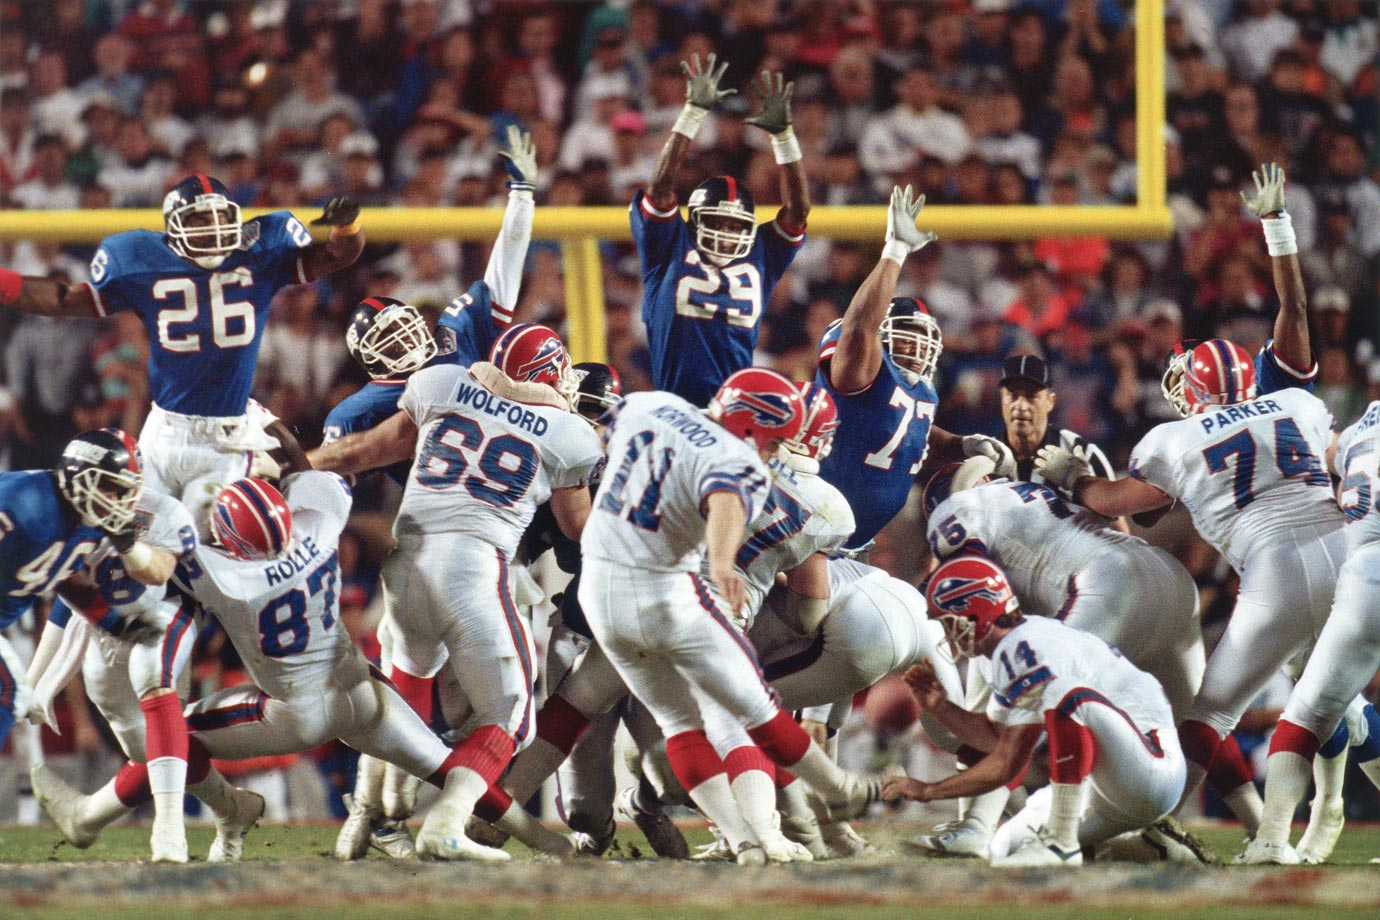 The Bills' first of four straight Super Bowl appearances was their best chance to win one. They were 13-3 and had handled the Giants during the regular season. New York was forced to turn to backup quarterback Jeff Hostetler after Phil Simms was lost to injury for the season. But the Giants masterfully used a ball-control offense to keep Bills quarterback Jim Kelly and running back Thurman Thomas off the field for 40 minutes 33 seconds and led 20-19 in the final seconds. Yet, they still weren't safe. Kelly led one last desperation drive only to watch Scott Norwood's winning field goal attempt of 47 yards sail infamously wide right.